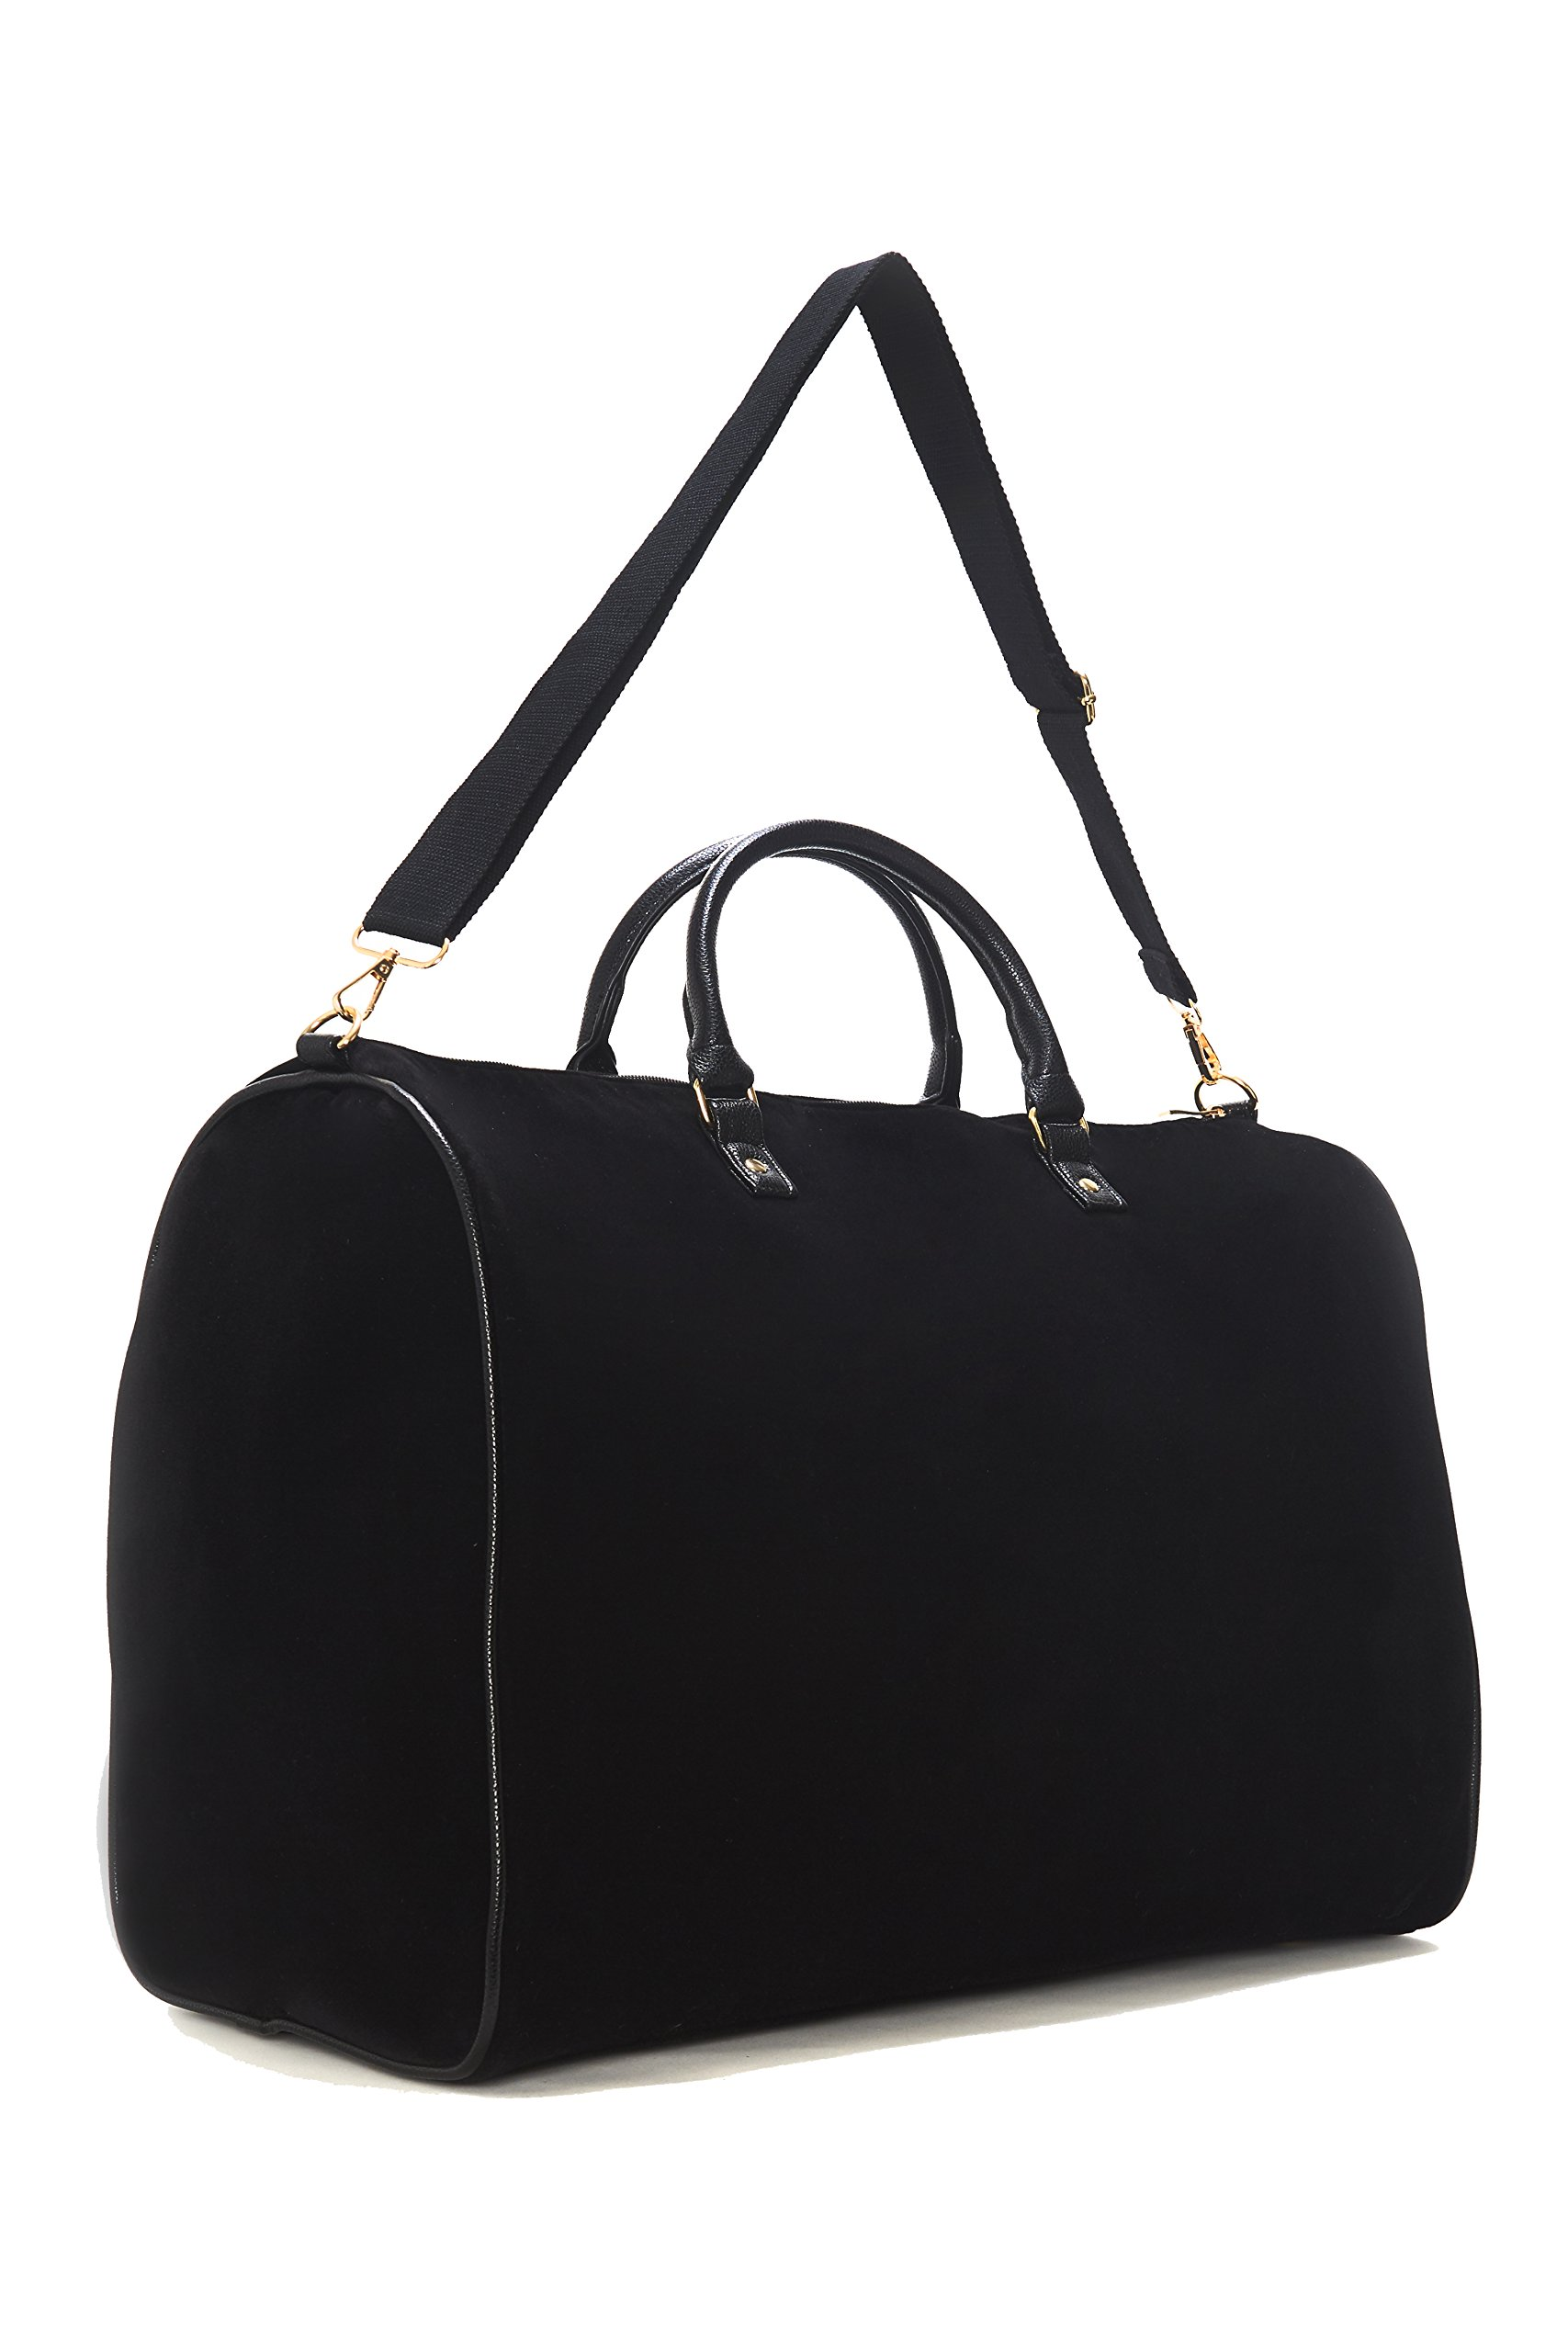 Limited Time Sale - Womens Black Velvet Weekender Bag, Duffle Bag, Overnight Bag, Travel Bag, Luggage, Large Tote Bag, Fashion Bag, Durable Bag, Best Handbag for women (Classic Black) - MSRP $99